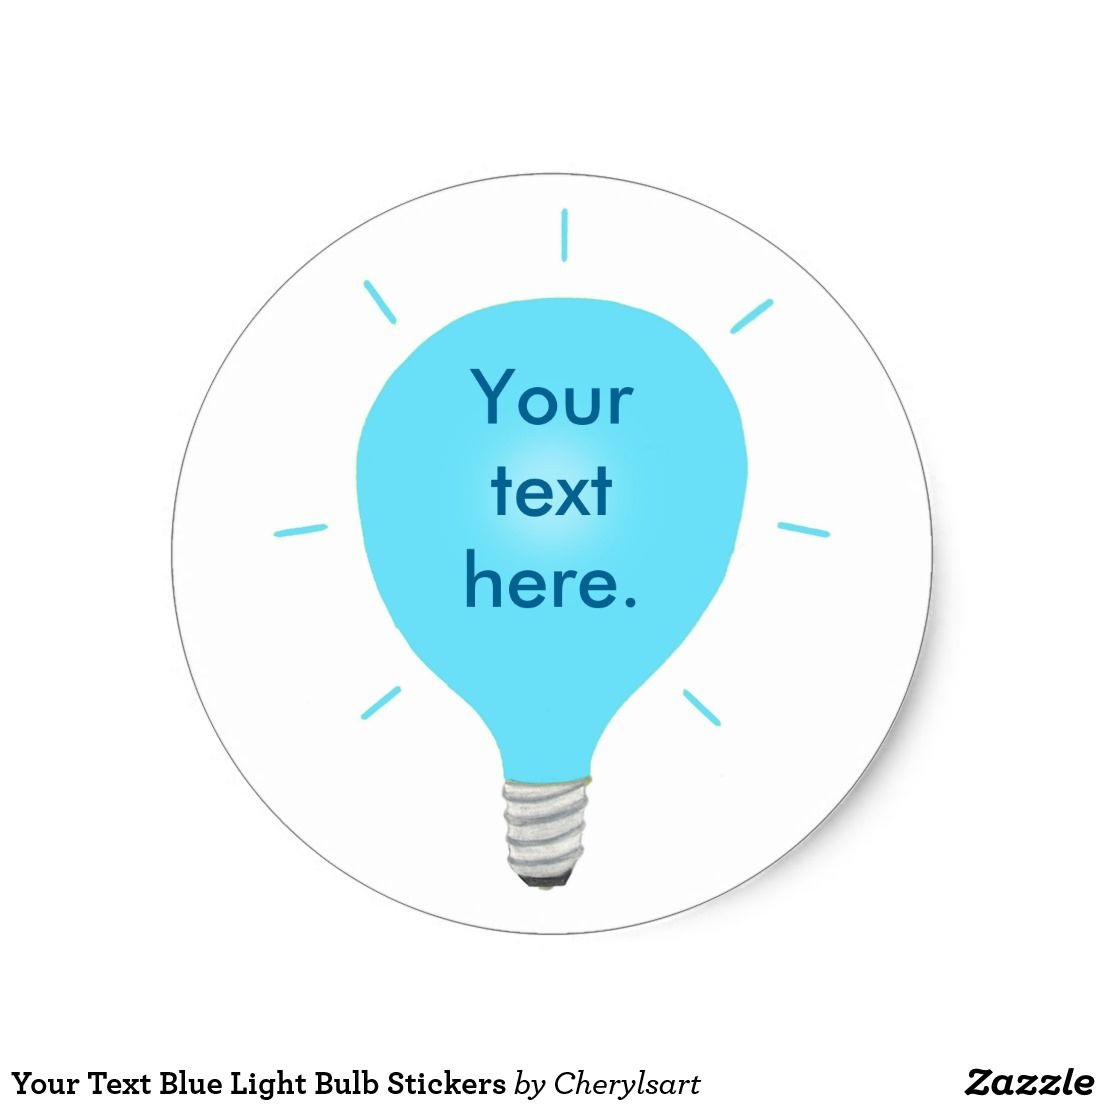 Your Text Blue Light Bulb Stickers